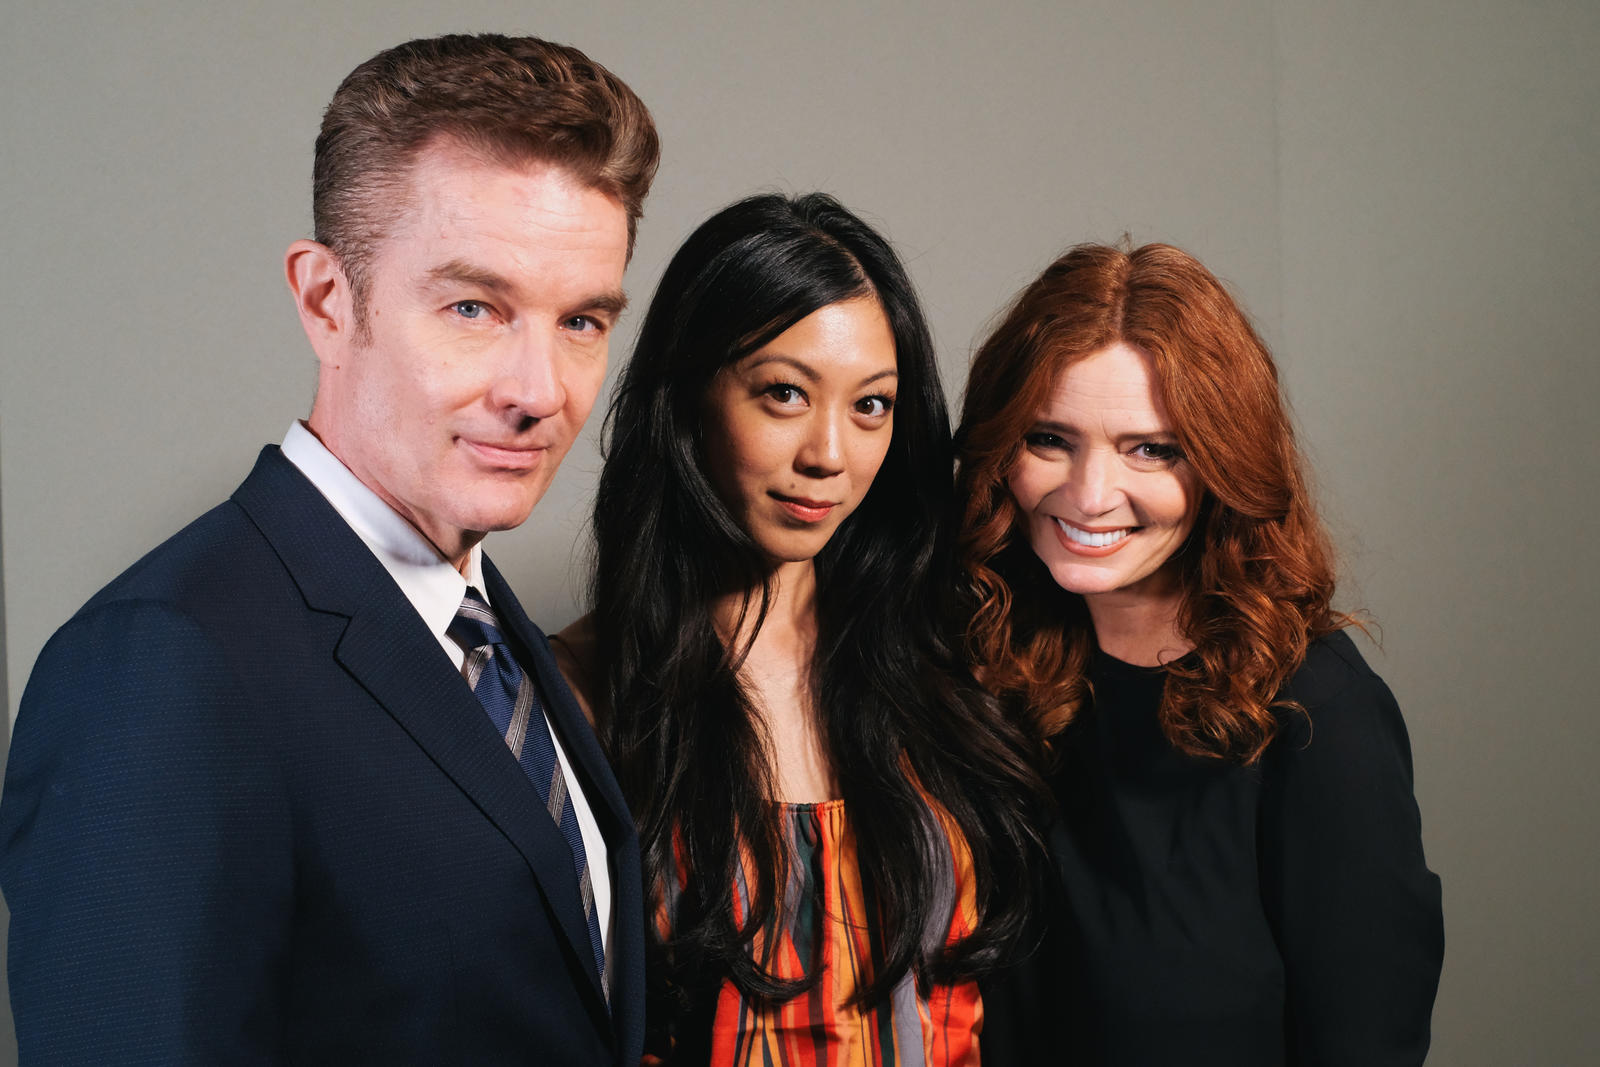 The Marvel After Show - James Marsters, Brittany Ishibashi, and Brigid Brannagh